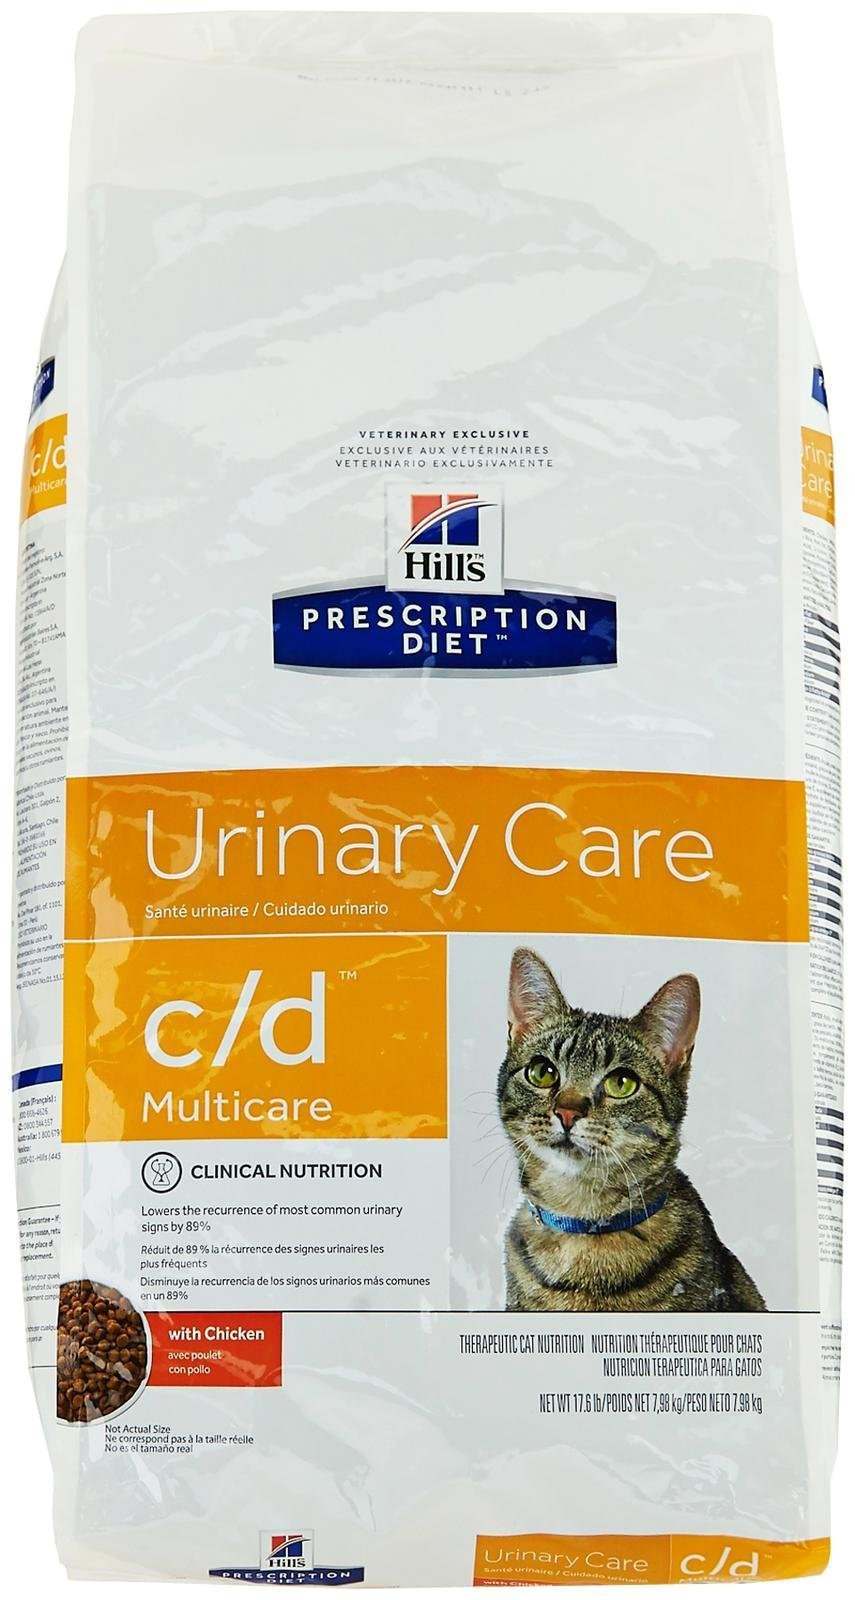 Hill's Prescription Diet Urinary Care c/d Multicare, 17.6 lbs by HILL'S PRESCRIPTION DIET